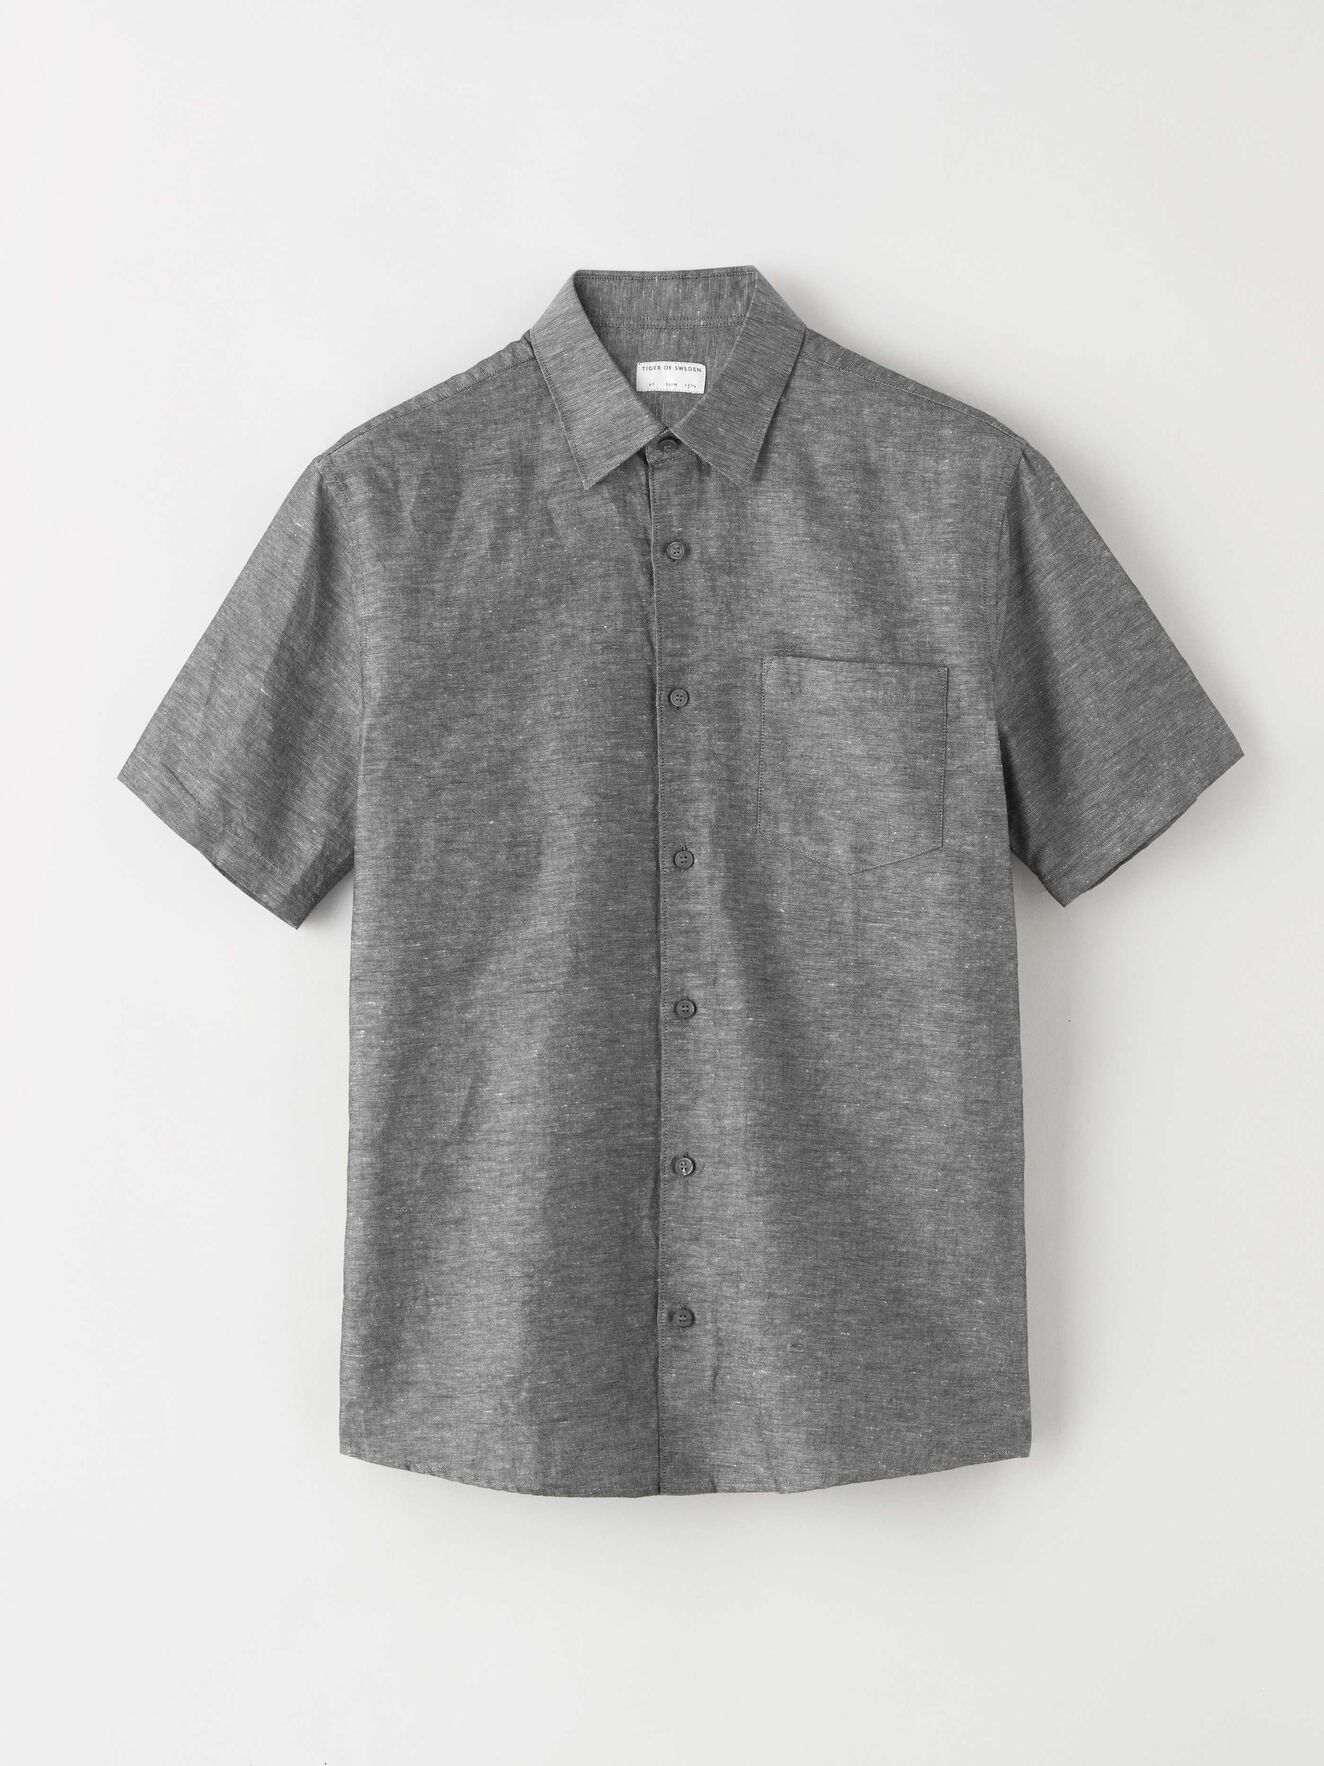 e1a94929b7e0 Shirts - Browse short- and long-sleeved shirts online at Tiger of Sweden